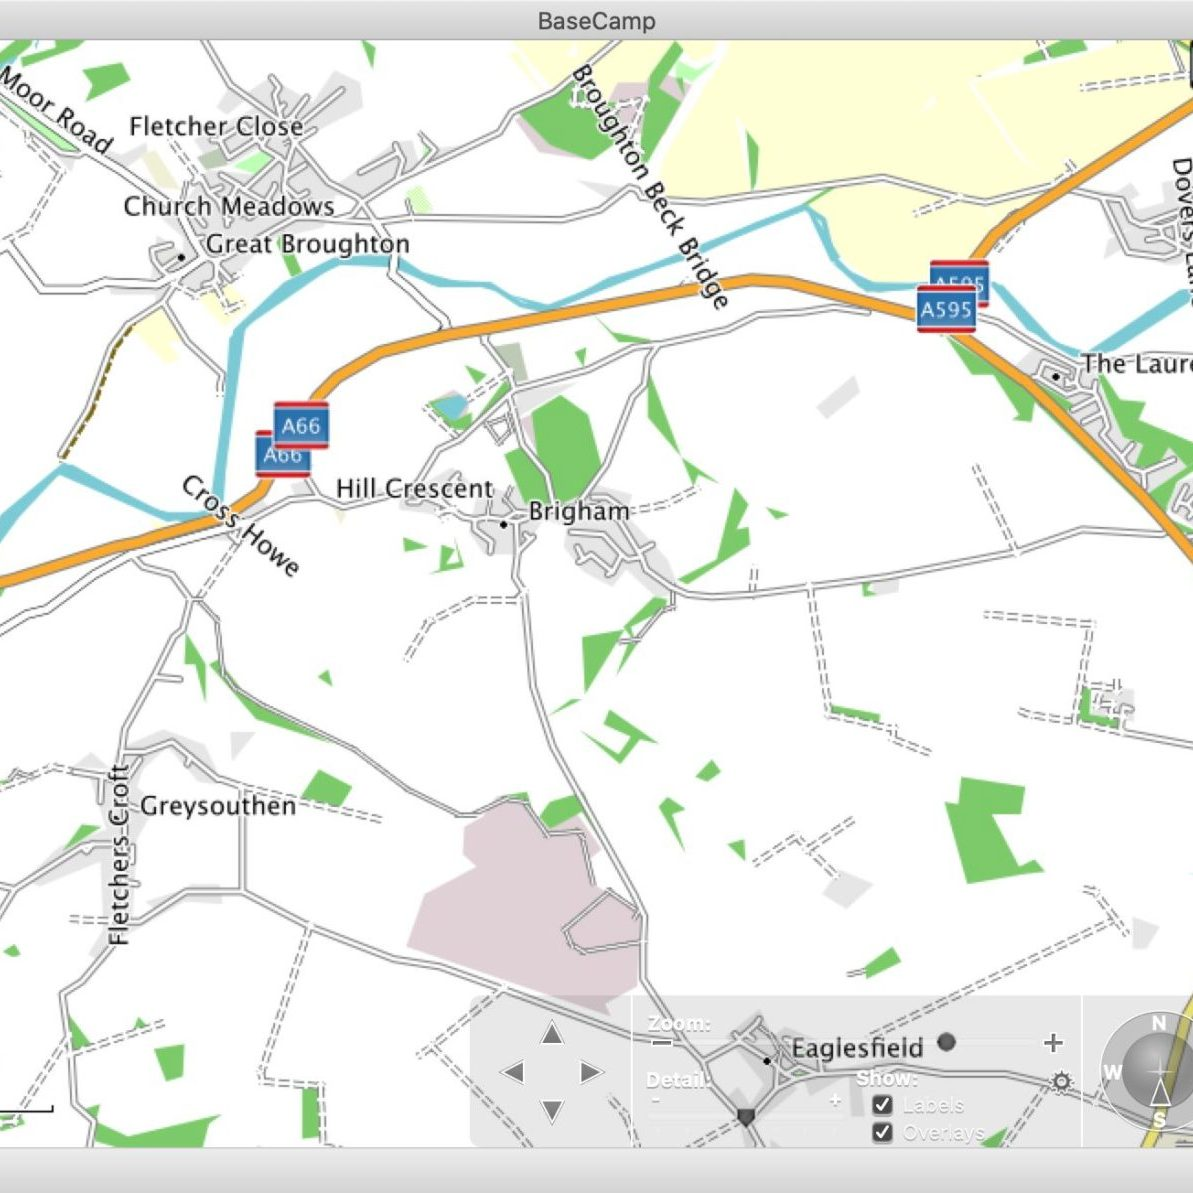 Screen-grab of Basecamp showing OSM mapping